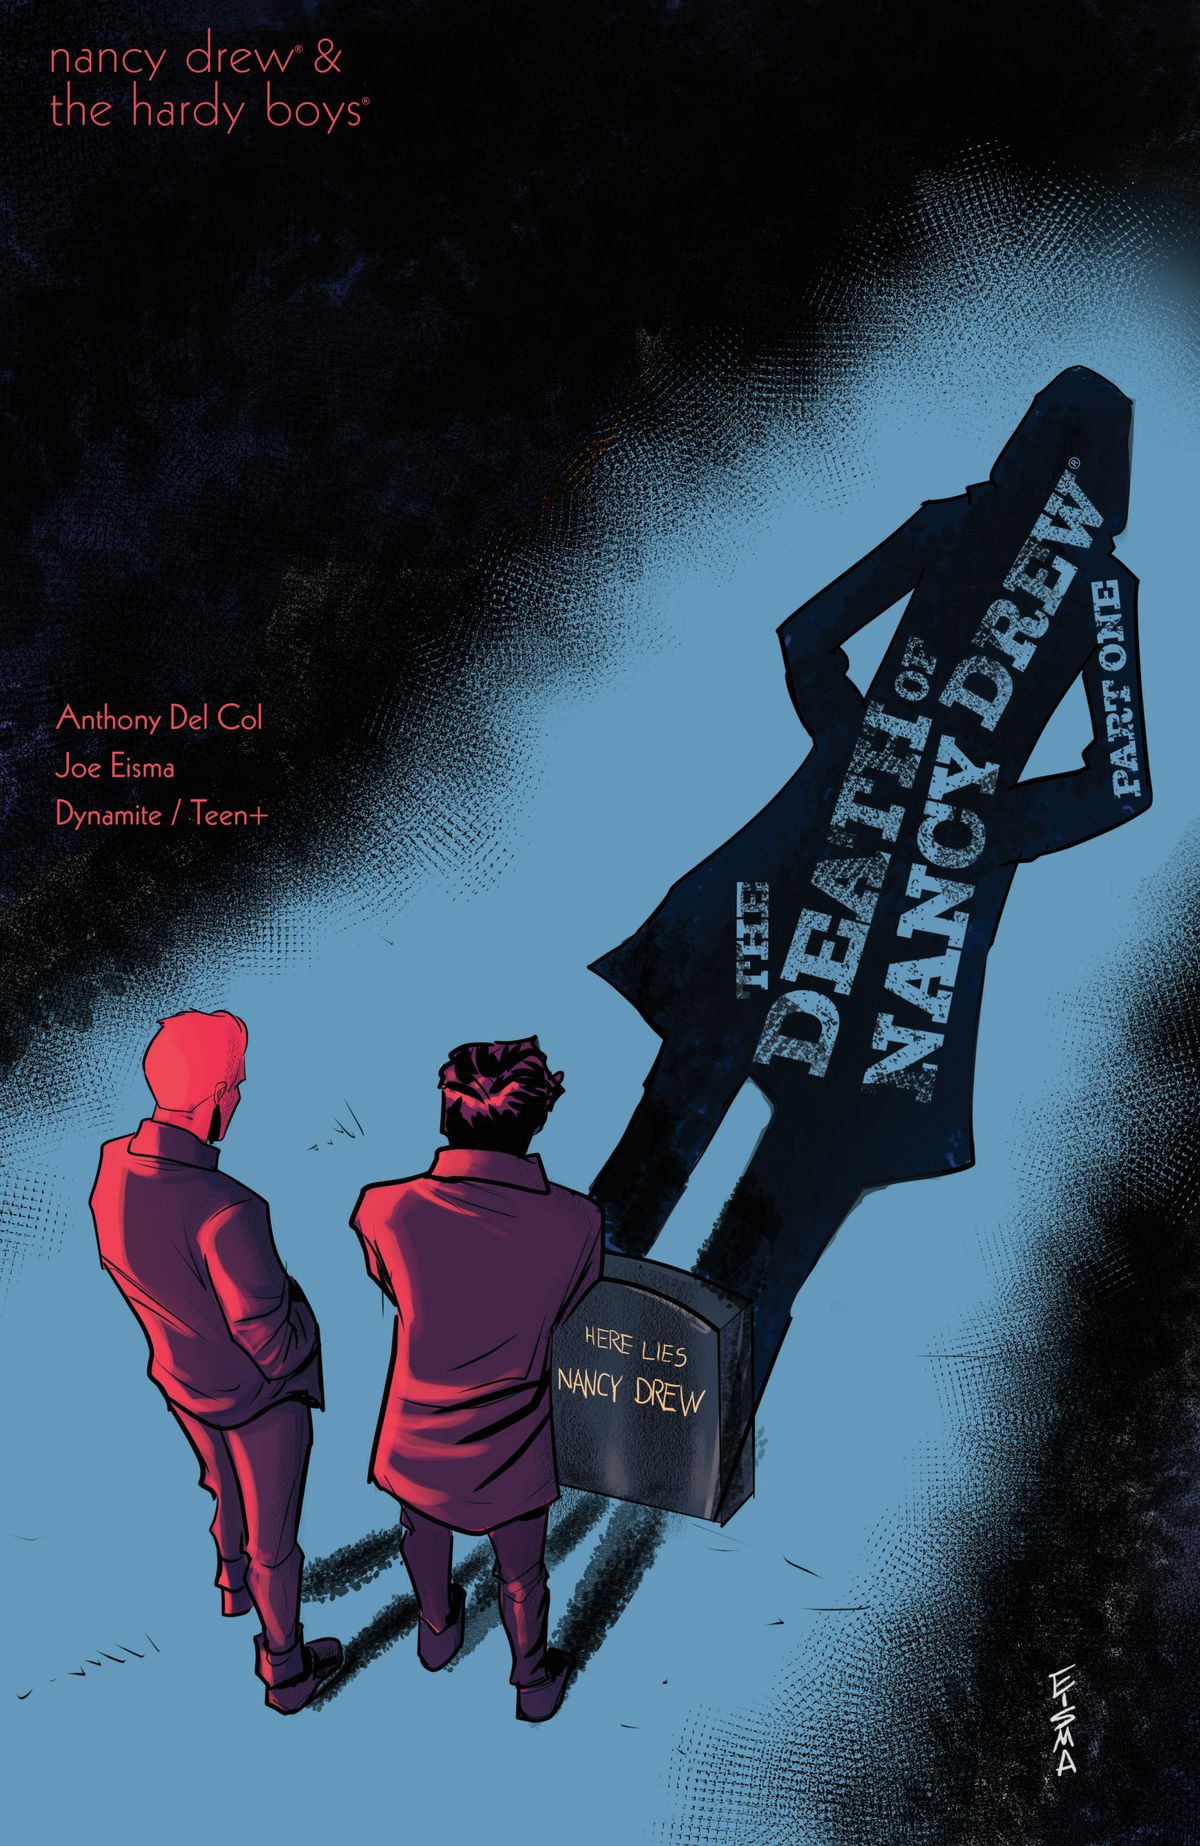 Frank and Joe Hardy stand over the grave of Nancy Drew on the cover of Nancy Drew & the Hardy Boys: The Death of Nancy Drew #1, Dynamite Comics (2020).